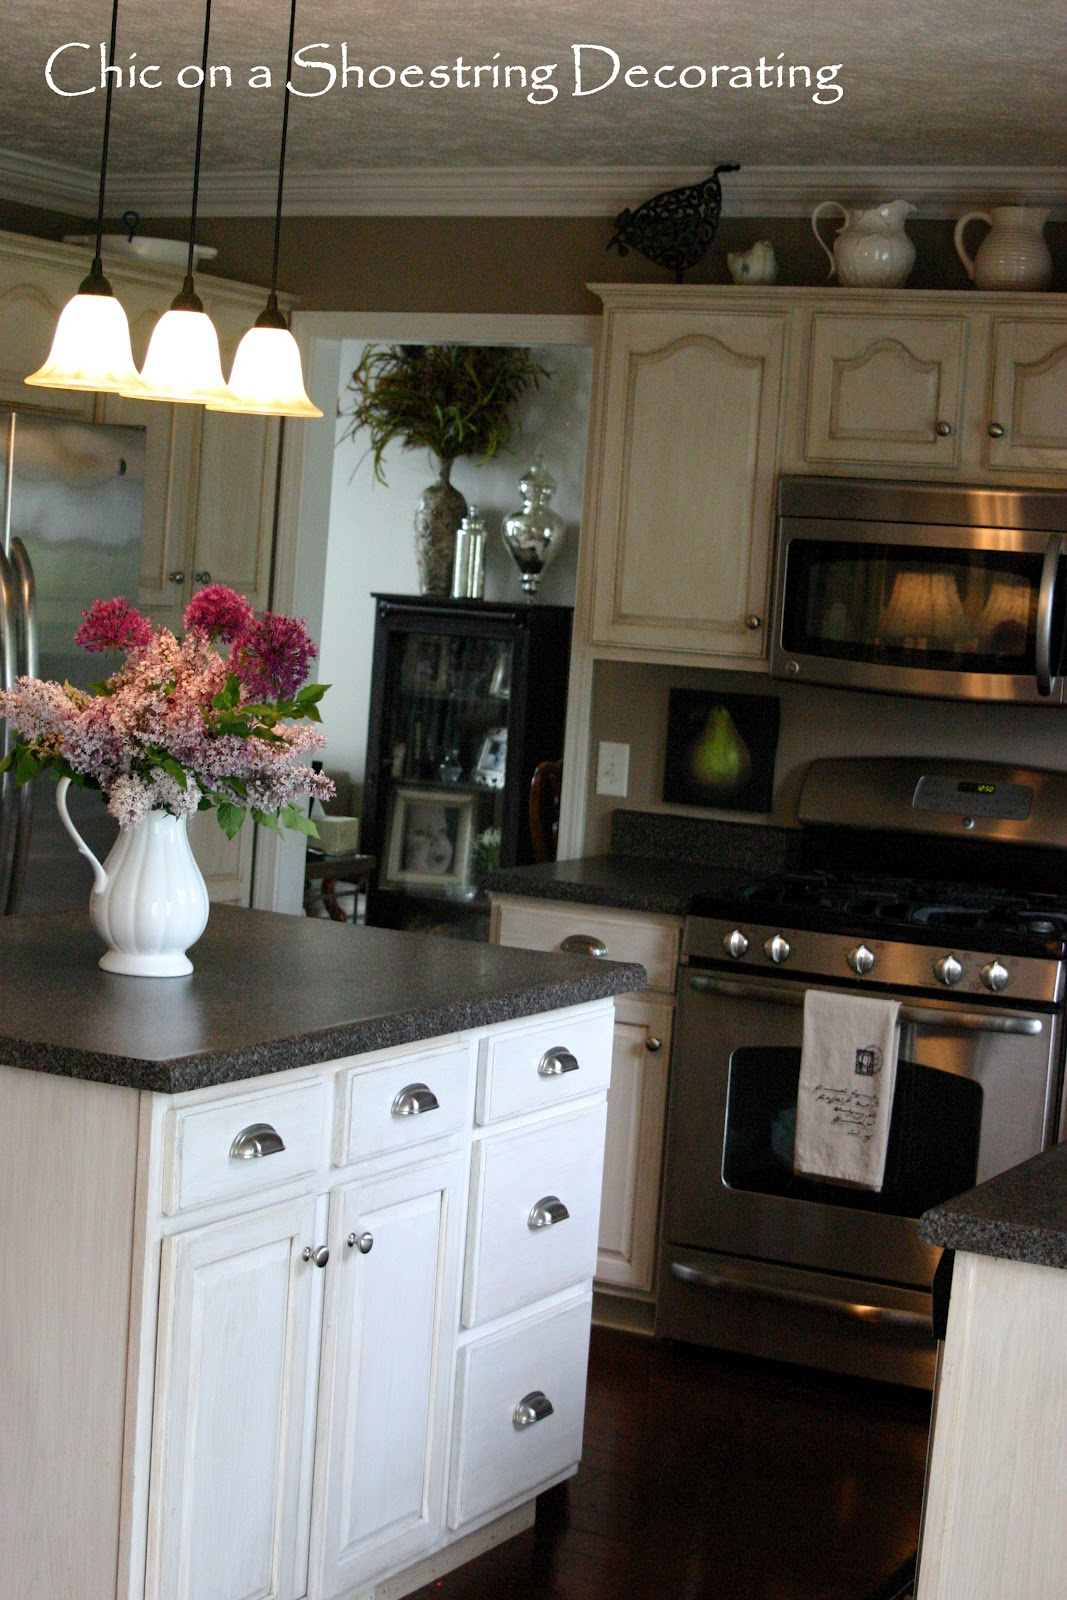 Chic on a Shoestring Decorating How to Change Your Kitchen